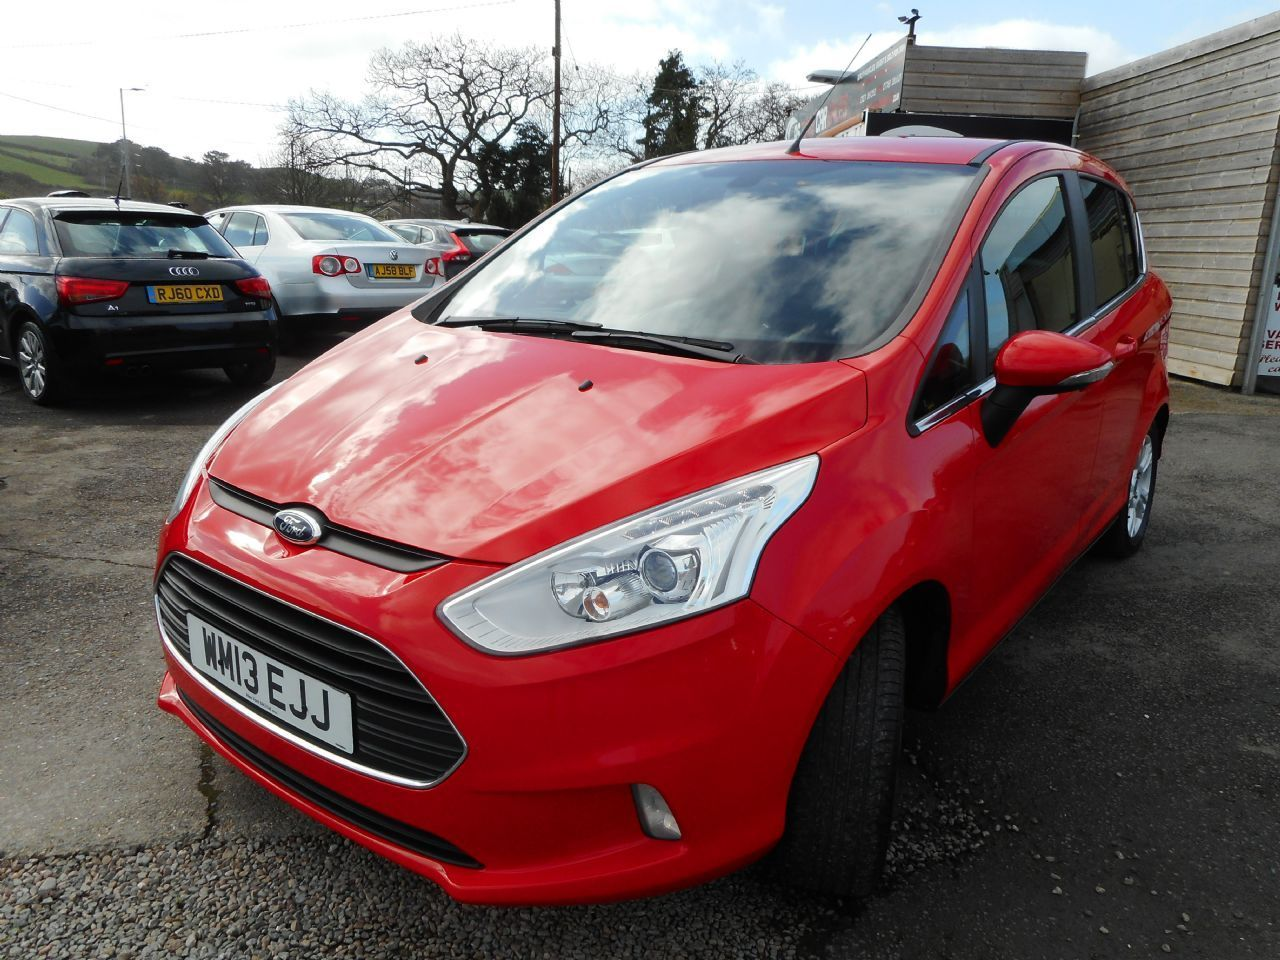 FORD B-MAX 1.4 90PS Zetec (2013) - Picture 16